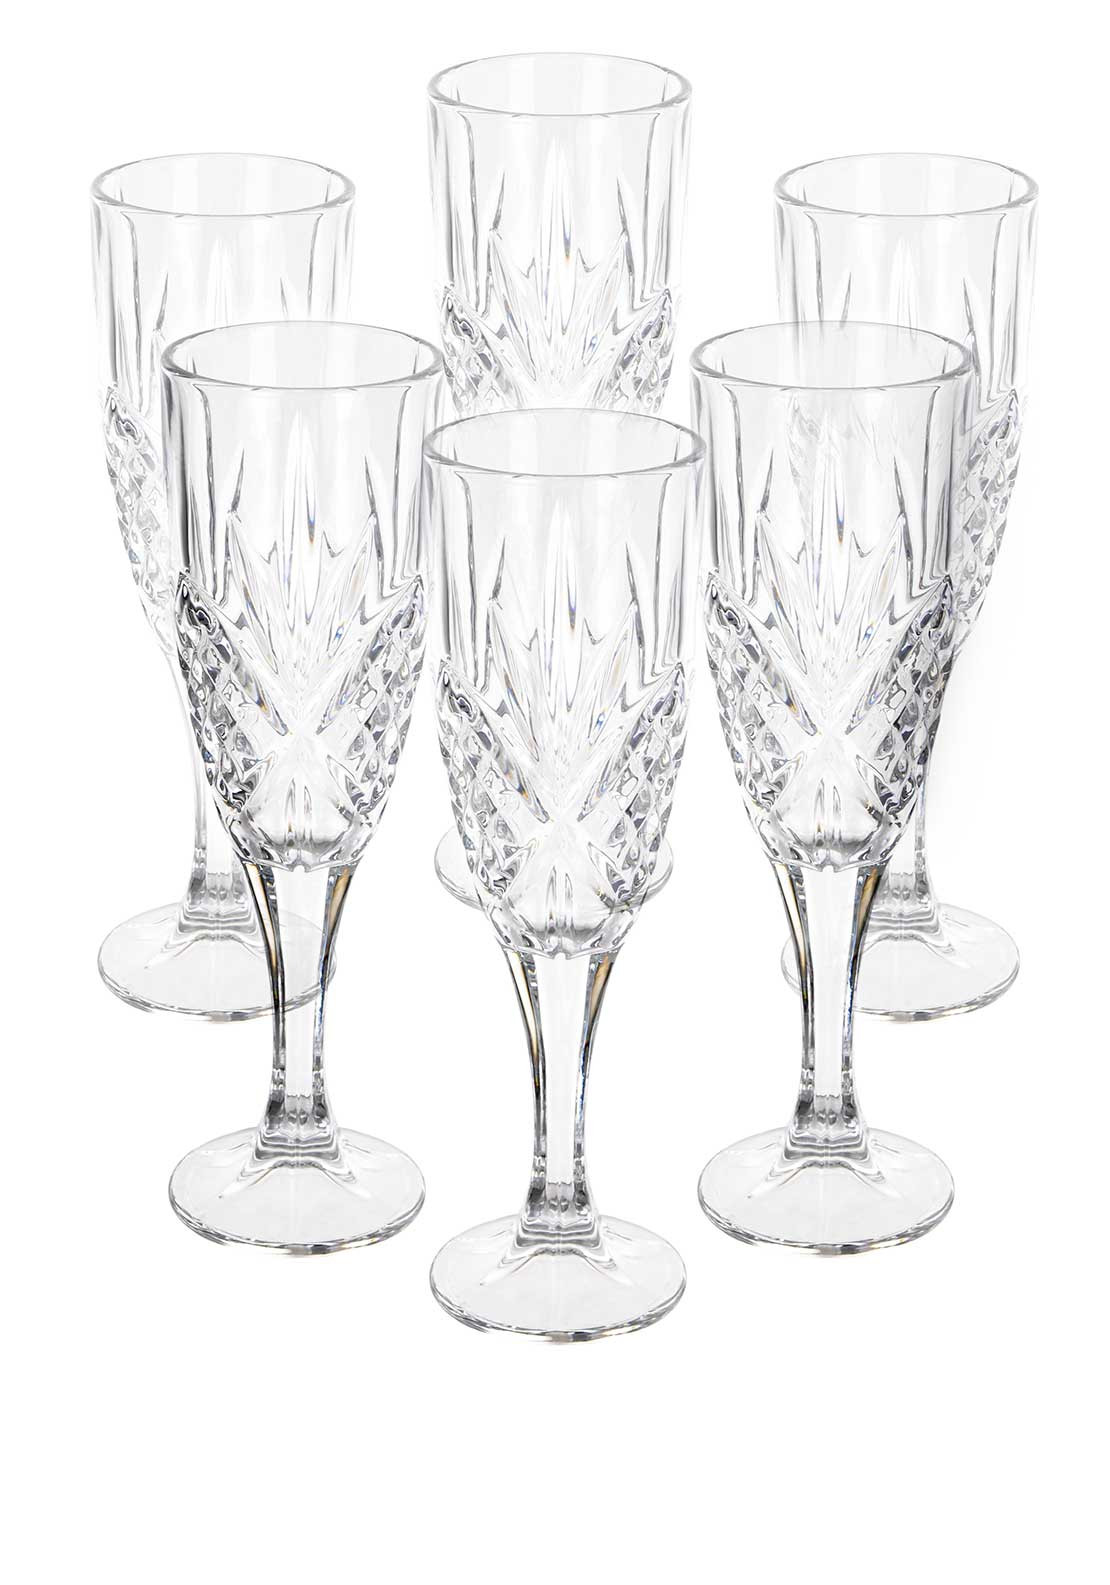 Killarney Crystal Ireland Trinity Champagne Flute Glasses, Set of 6